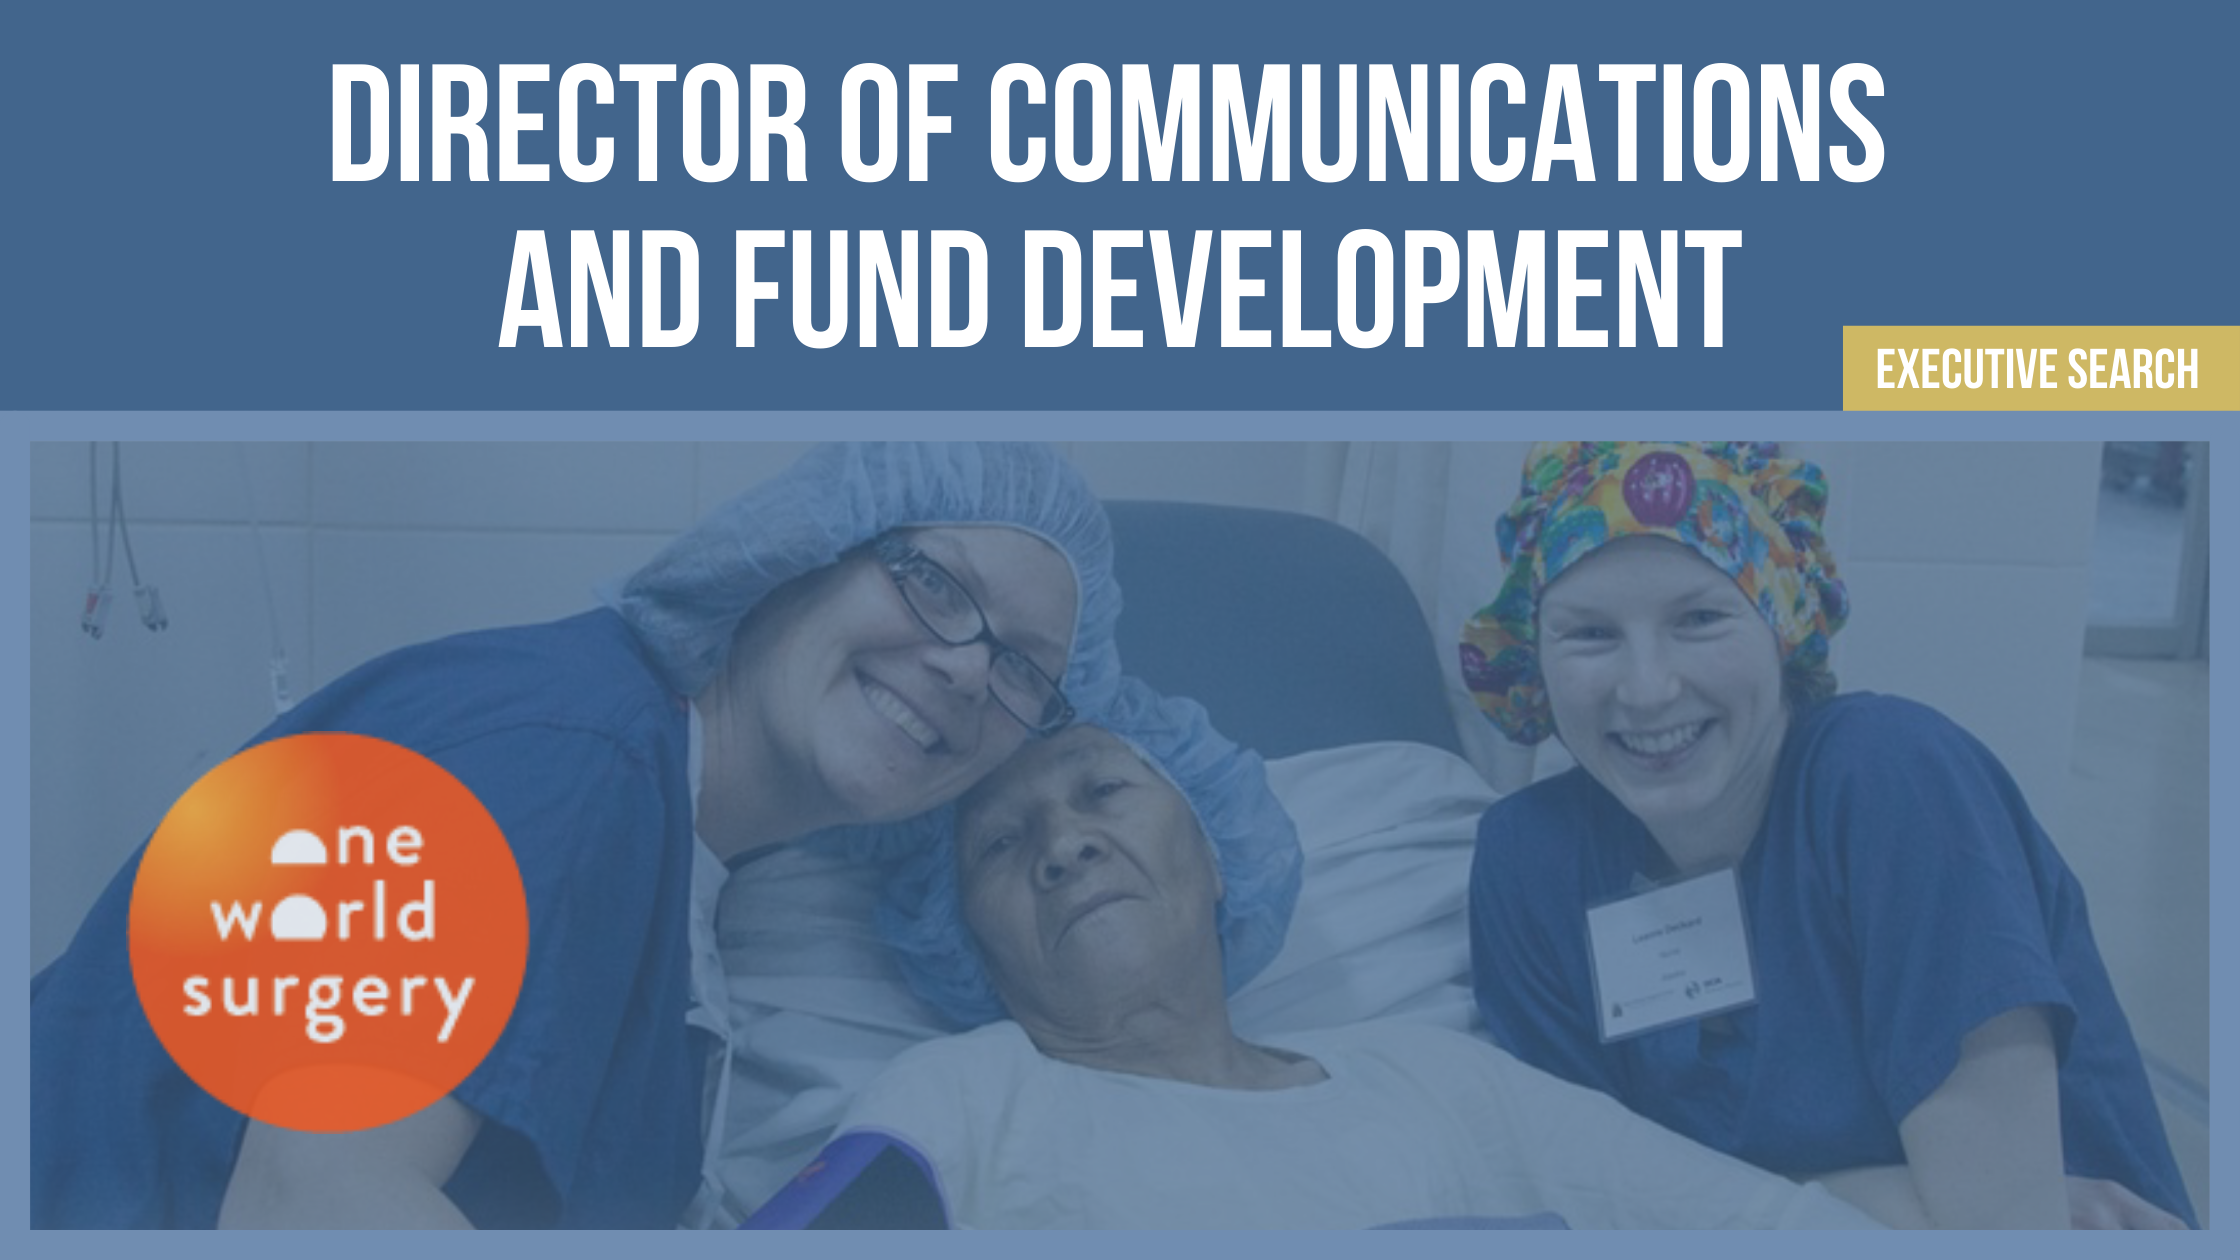 Executive Search: Director of Communications and Fund Development